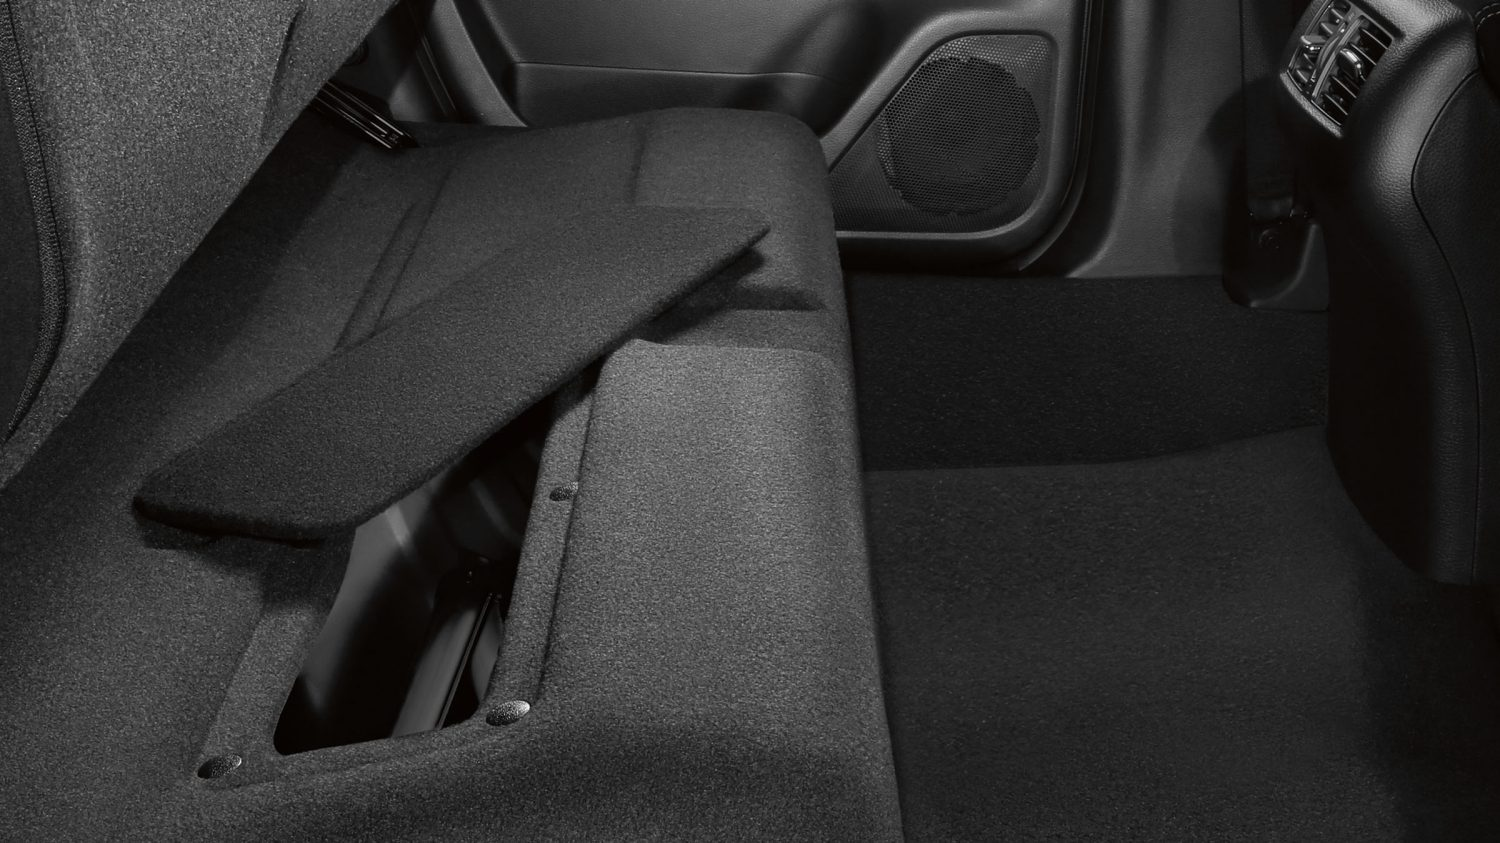 Nissan Navara rear storage compartment